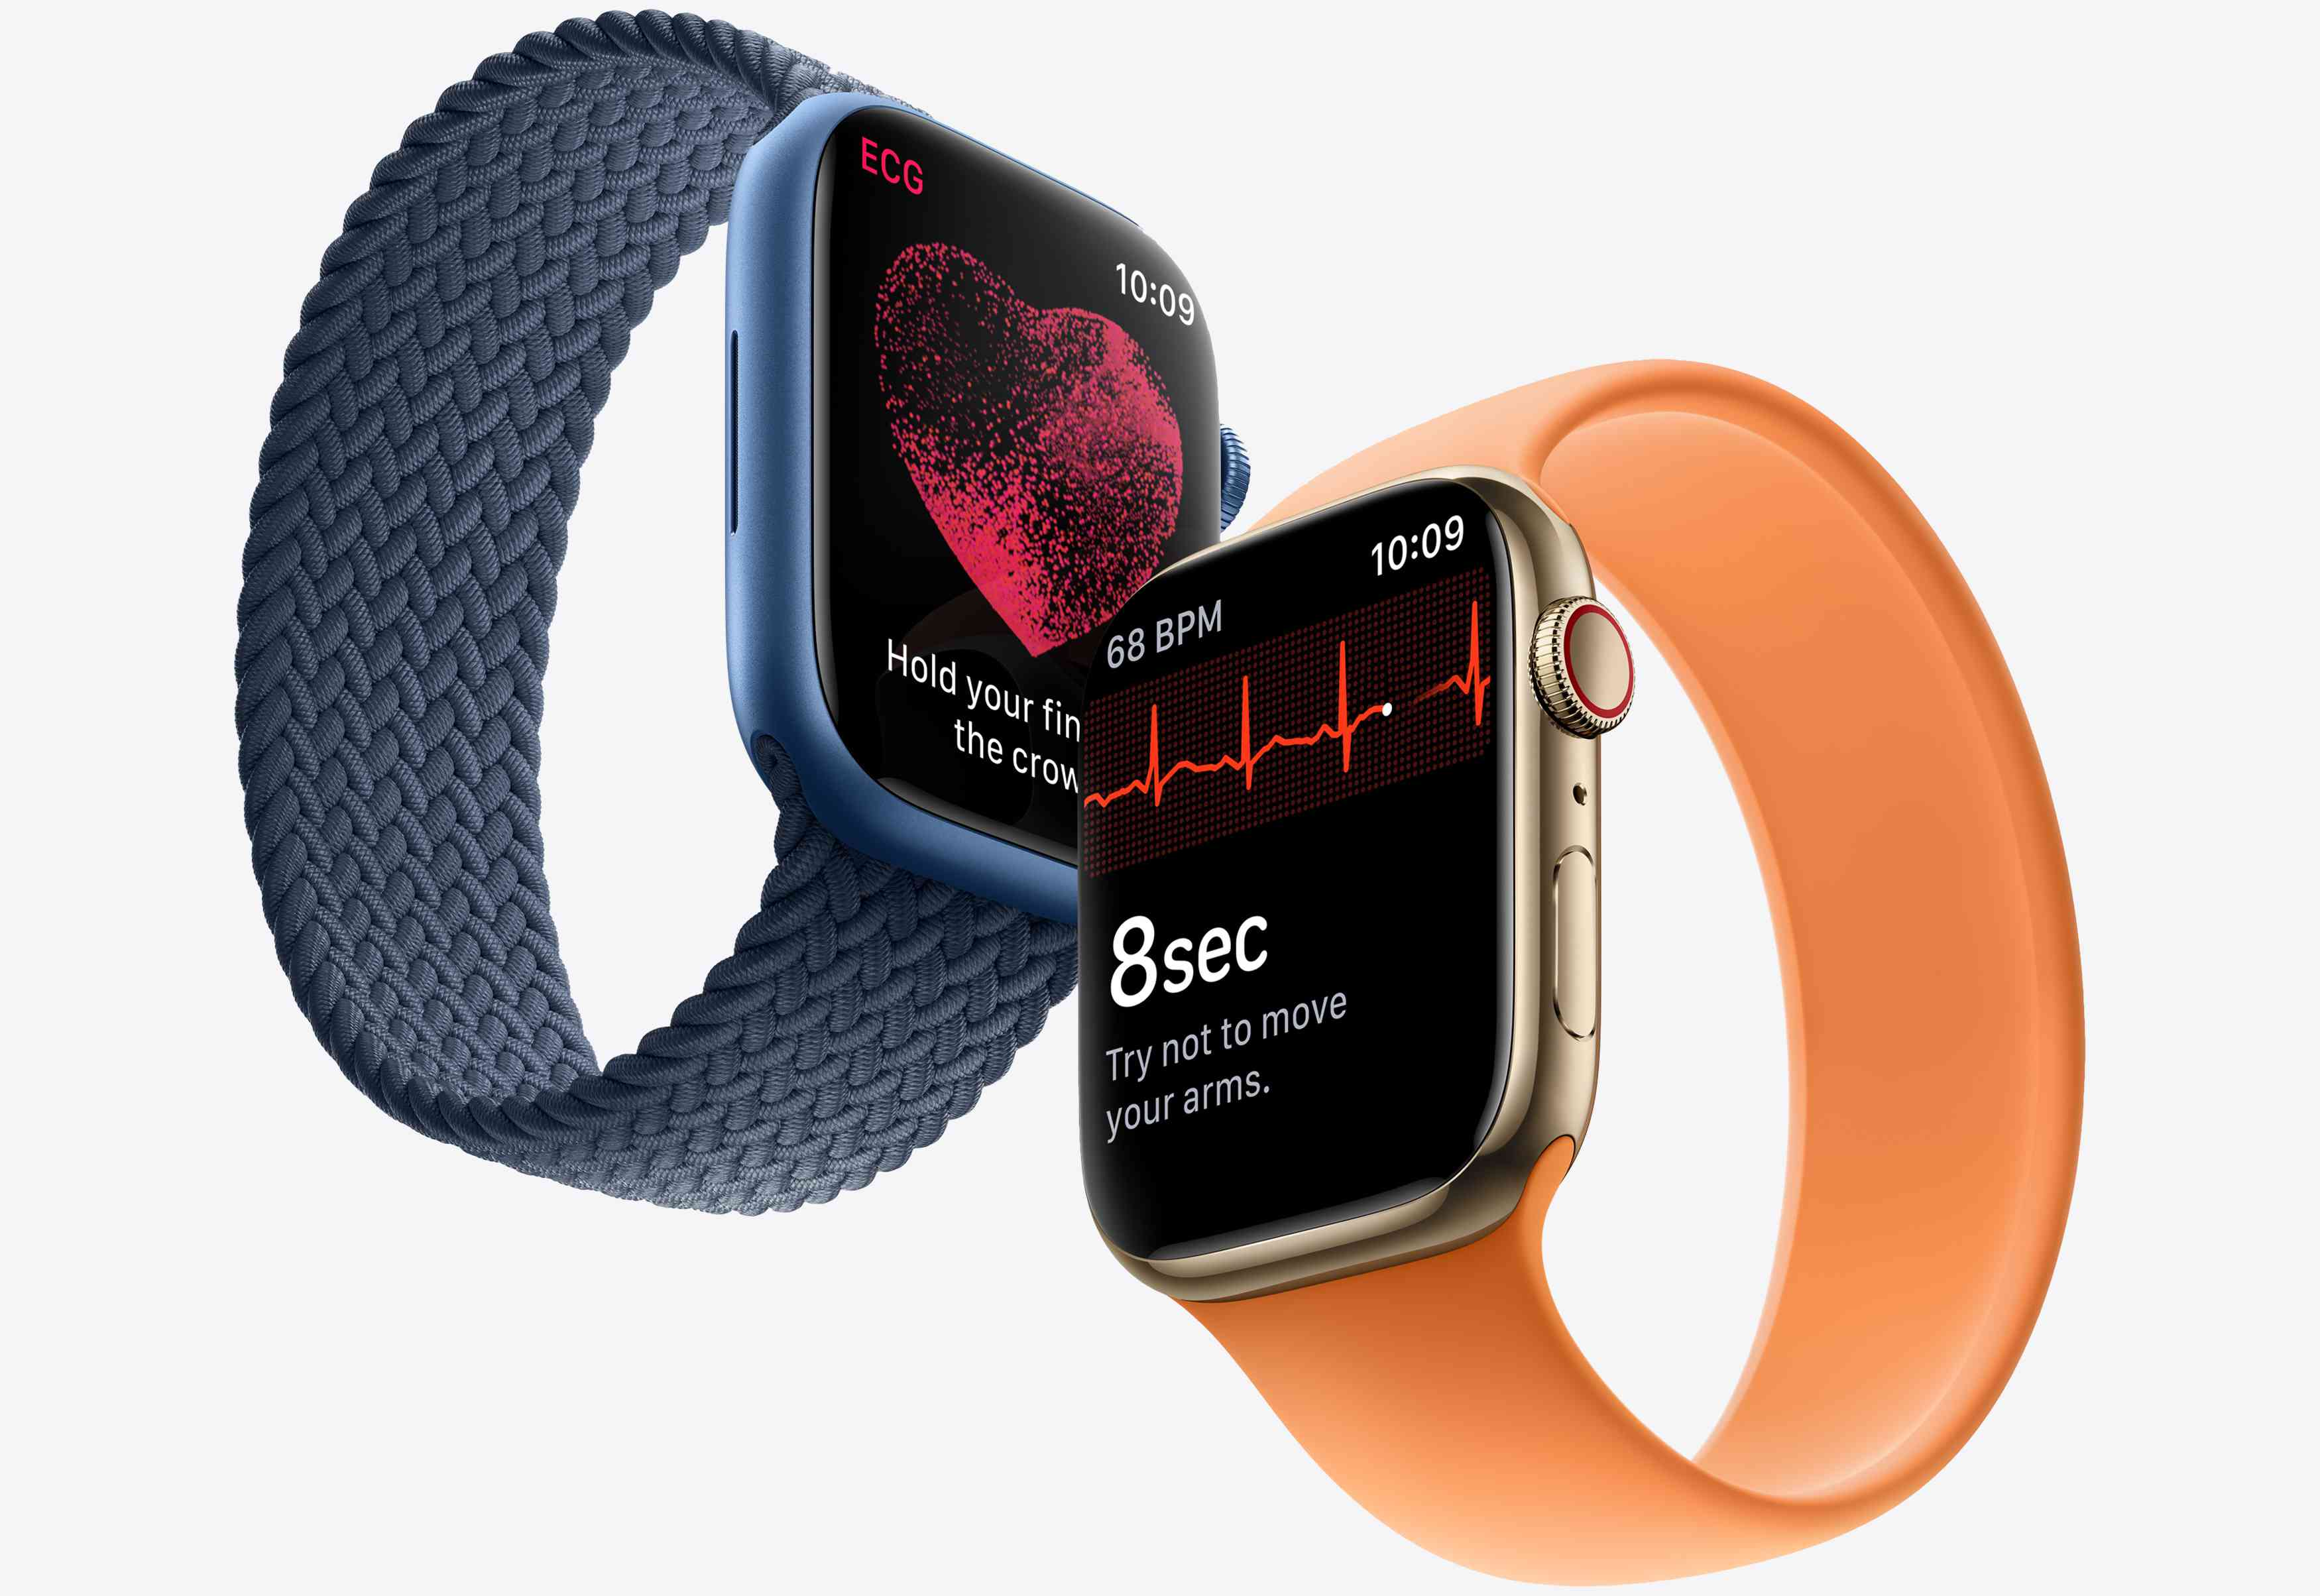 Apple Watch Series 7 in blue and gold